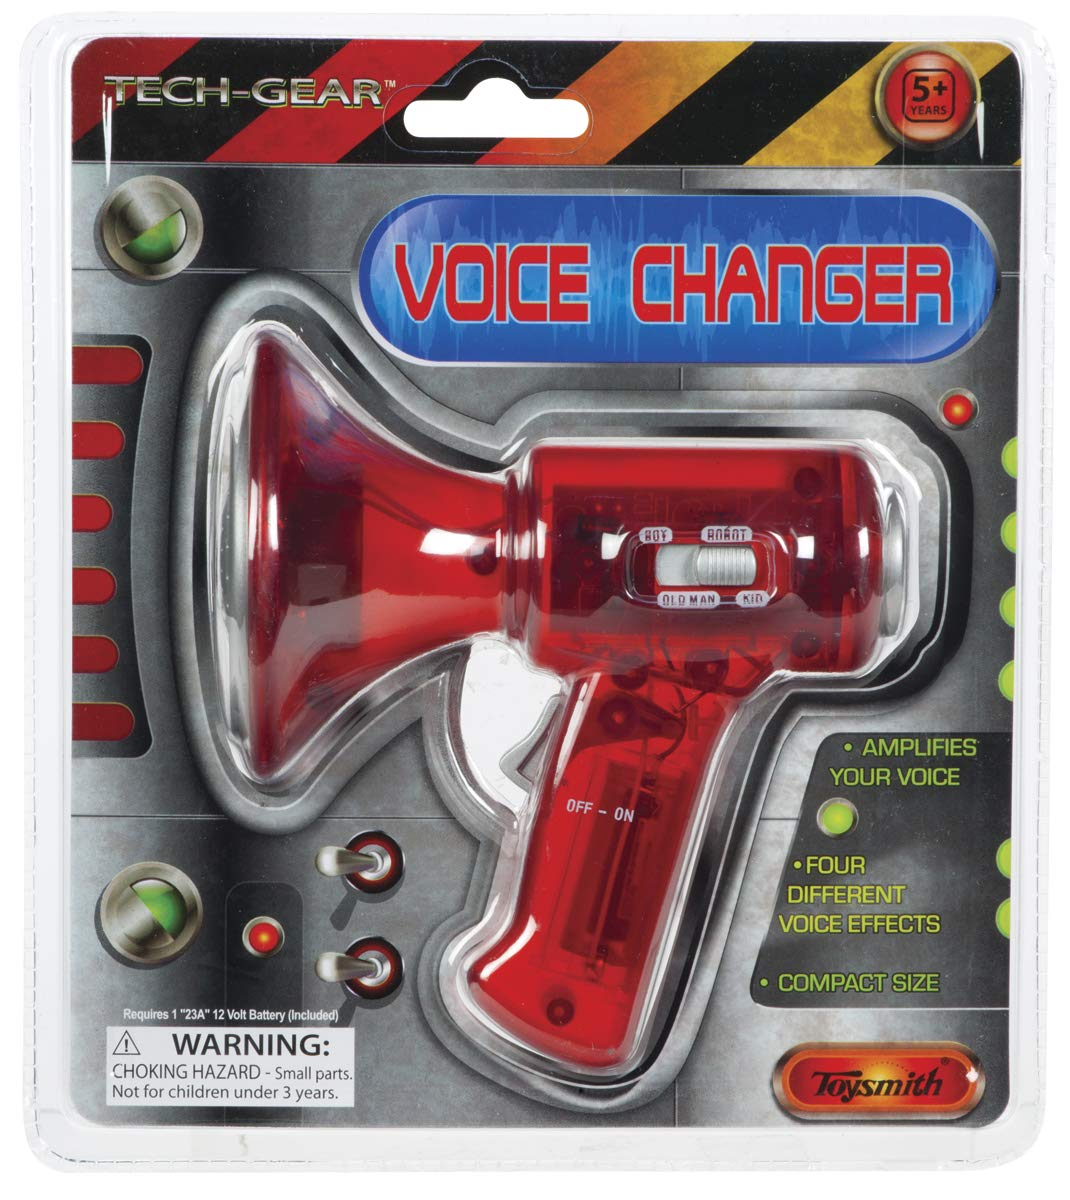 Toysmith 3.5' Small Voice Changer # 1378 - Colors May Vary Toy Smith